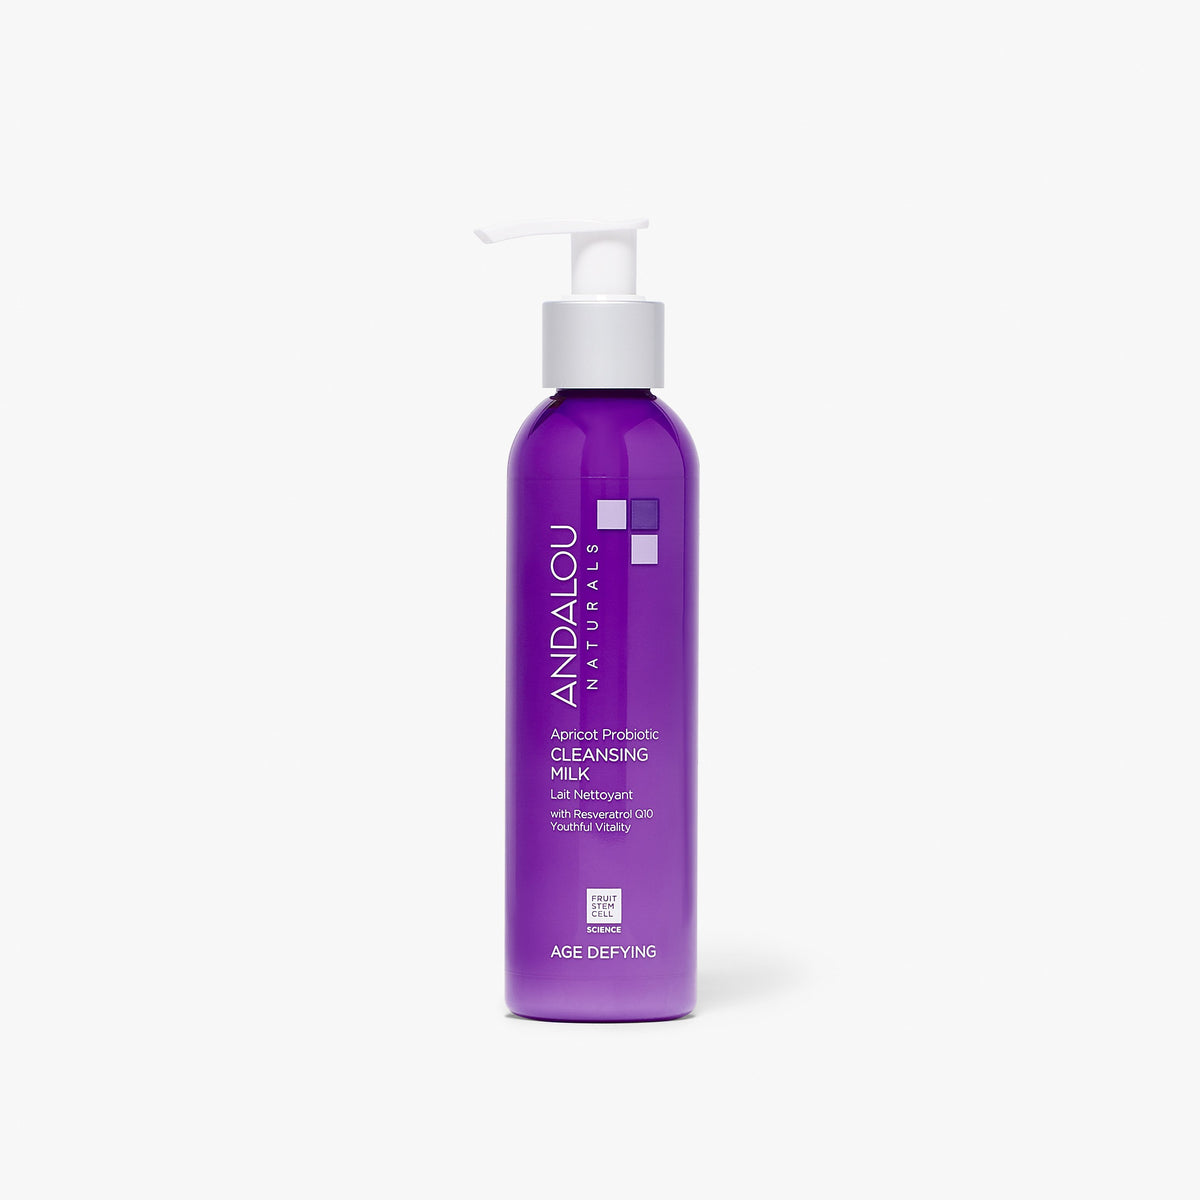 Age Defying Apricot Probiotic Cleansing Milk - Andalou Naturals US